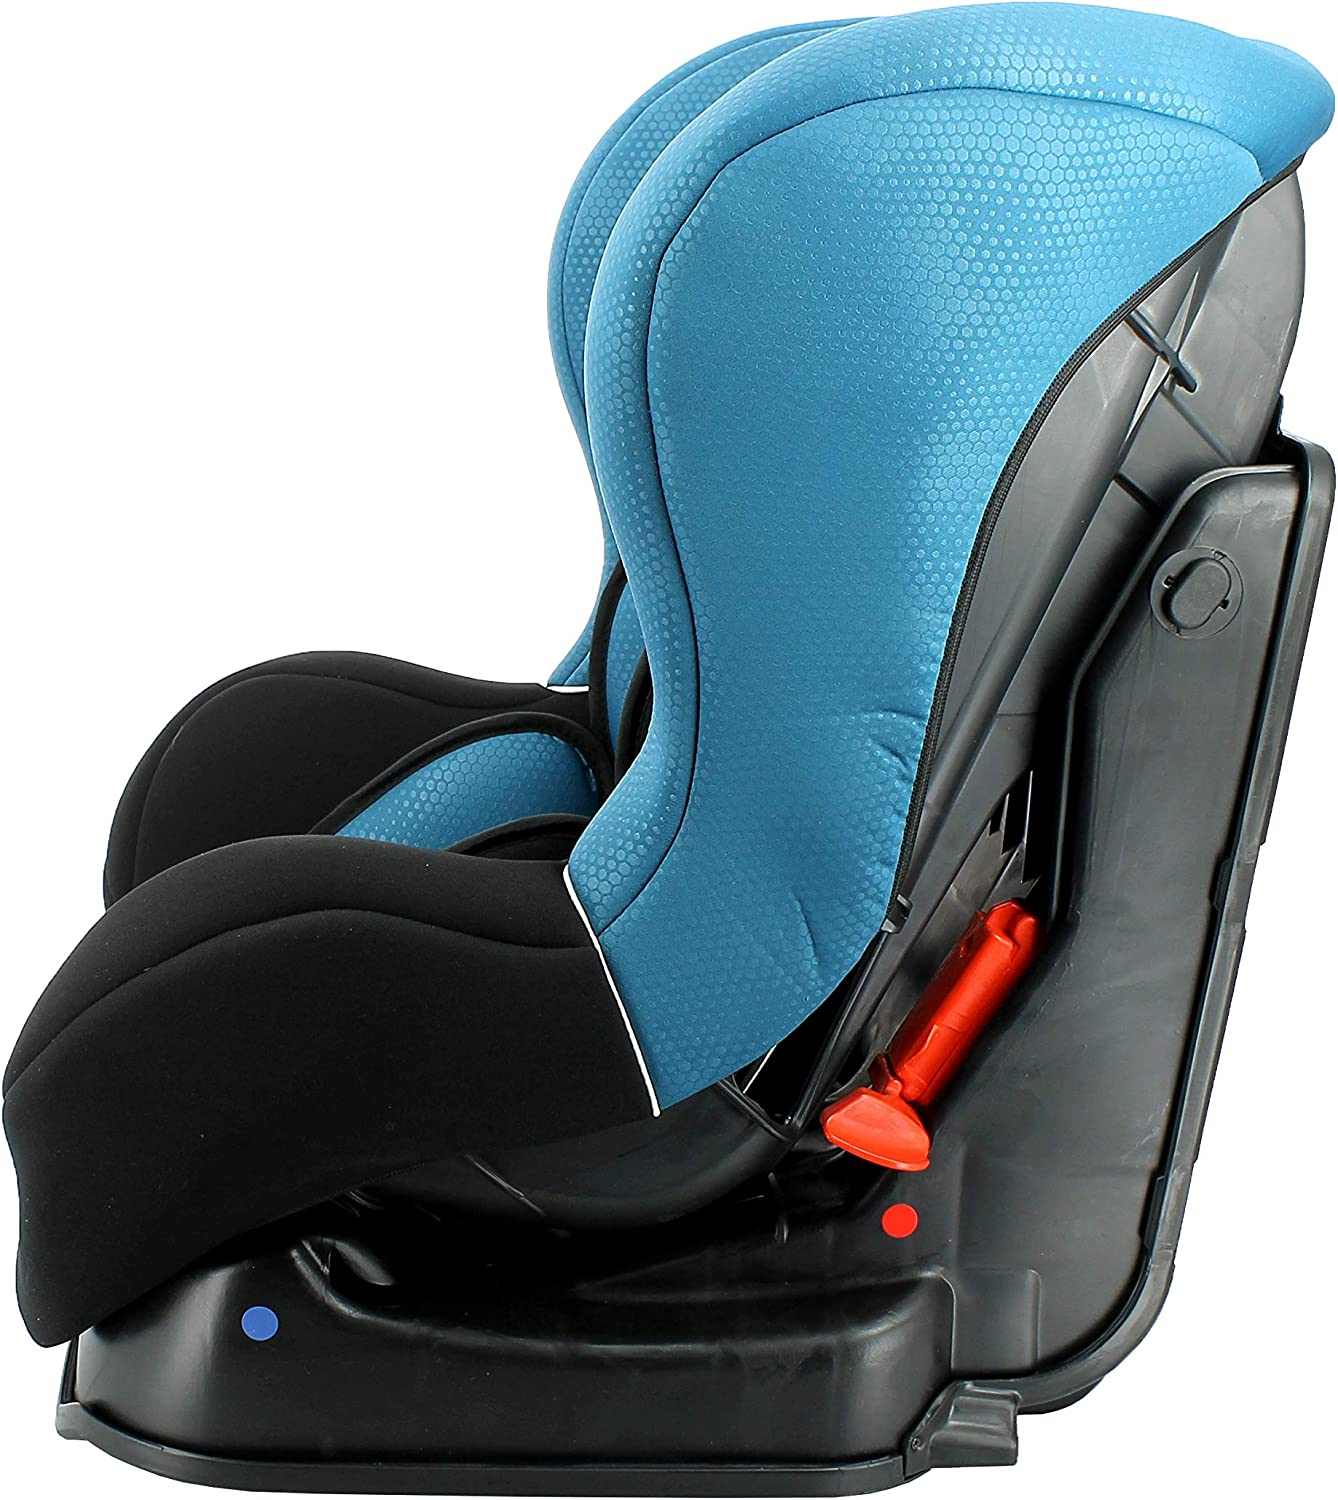 0-18kg Si/ège auto COSMO groupe 0//1 avec protection lat/érale fabrication fran/çaise Nania Luxe bleu